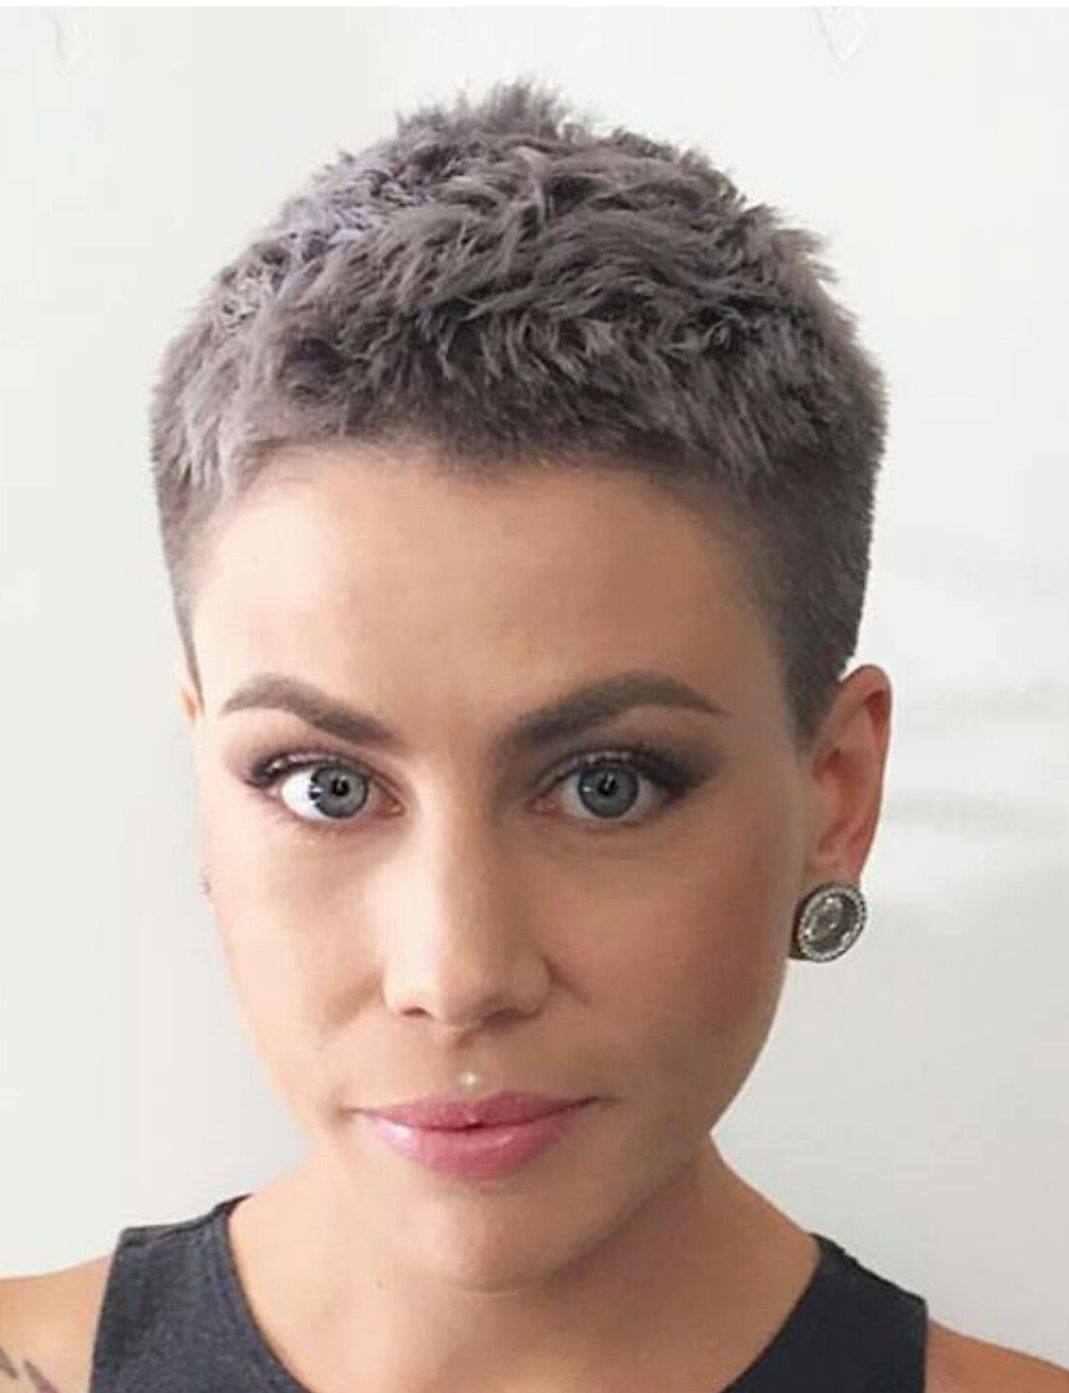 Very Short Haircuts 1 Best Haircut Style For Men Women And Kids Trending In 2021 Really Short Hair Very Short Haircuts Short Hair Styles